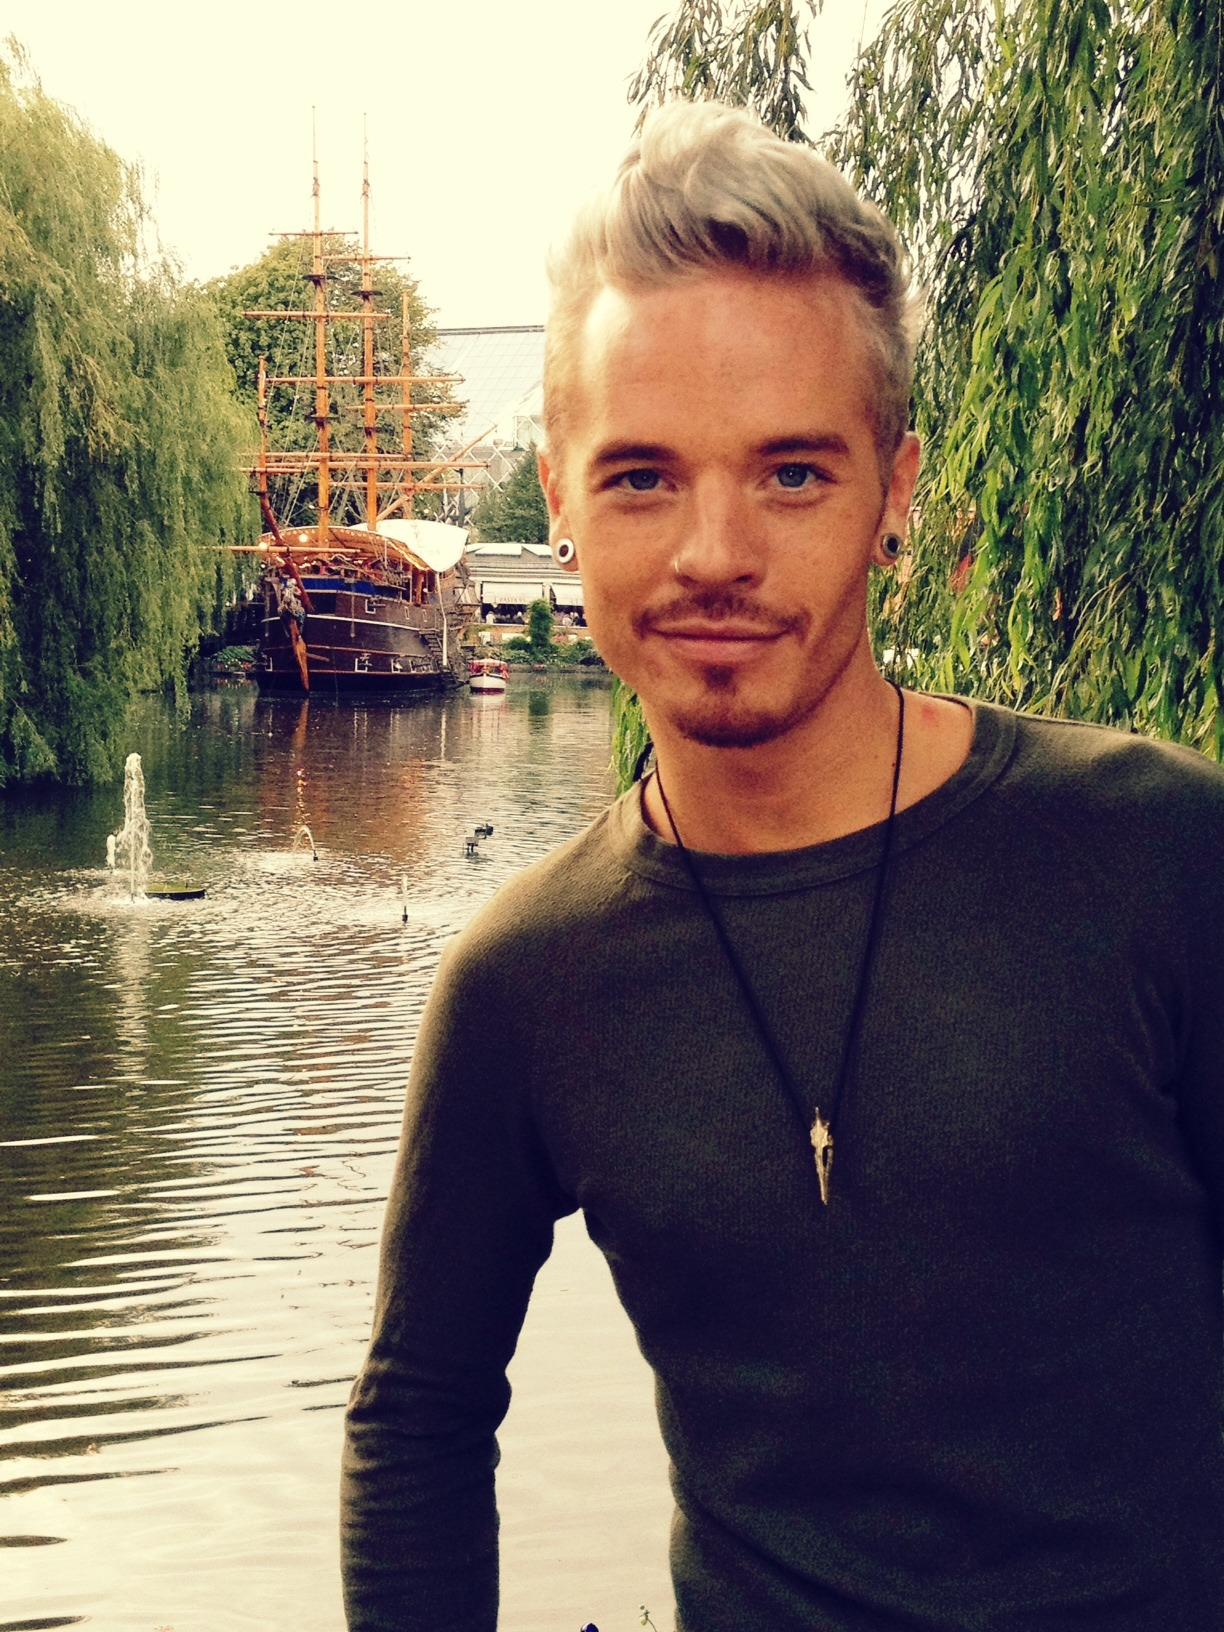 tommyatemyheart:  adamfuckmelambert:  adommazing:  Picture from Sauli's blog… HOW CAN HE EVEN…. Okay I give up <33333333  anyone noticed his hickey/claim mark on his shoulder hsfjksdhfkdjshfd omg guys i cant be the only one who finds this fucking hottt *-*  ^Oh, you mean Adam's love bite? The mark he left on Sauli to show who he belongs to? Yes, I find that quite hot.  'Before you go…' Adam breathed softly against Sauli's neck. He began to run his tongue down his boyfriend's neck and stopped at his shoulder blade, where he began to kiss gently, teasing Sauli a little. The Finnish man moaned in longing. 'More?' Sauli could hear a grin in Adam's voice, and he whimpered in approval. Adam began to kiss him deeply, getting carried away a little and using his tongue and teeth. 'Oh, my gawd…' Sauli closed his eyes in satisfaction, 'I've fallen in love with a vampire!' 'Hmmm?' Adam pulled away from his boyfriends shoulder. He gave a chuckle, 'Oops…my bad.' 'What?' Sauli grinned that cheeky little grin of his that Adam loved so much, staring into his partner's blue eyes. 'I think I've given you a new tattoo for your trip…' Adam grinned, 'oh well…at least they'll know you're mine…' ((And that's about as saucy as my fics will ever get)) XD